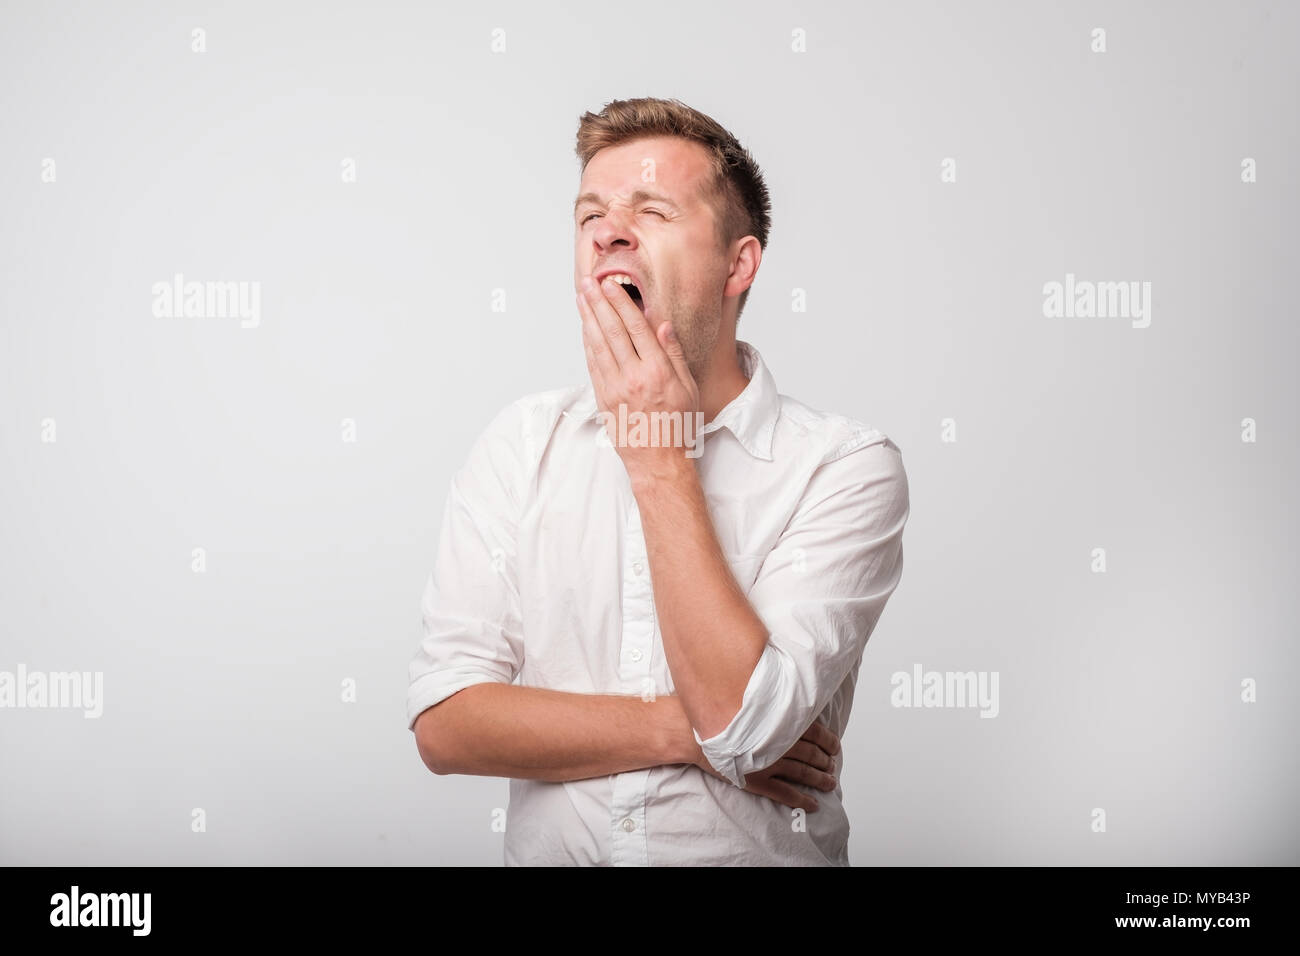 Portrait of caucasian yawning man. - Stock Image